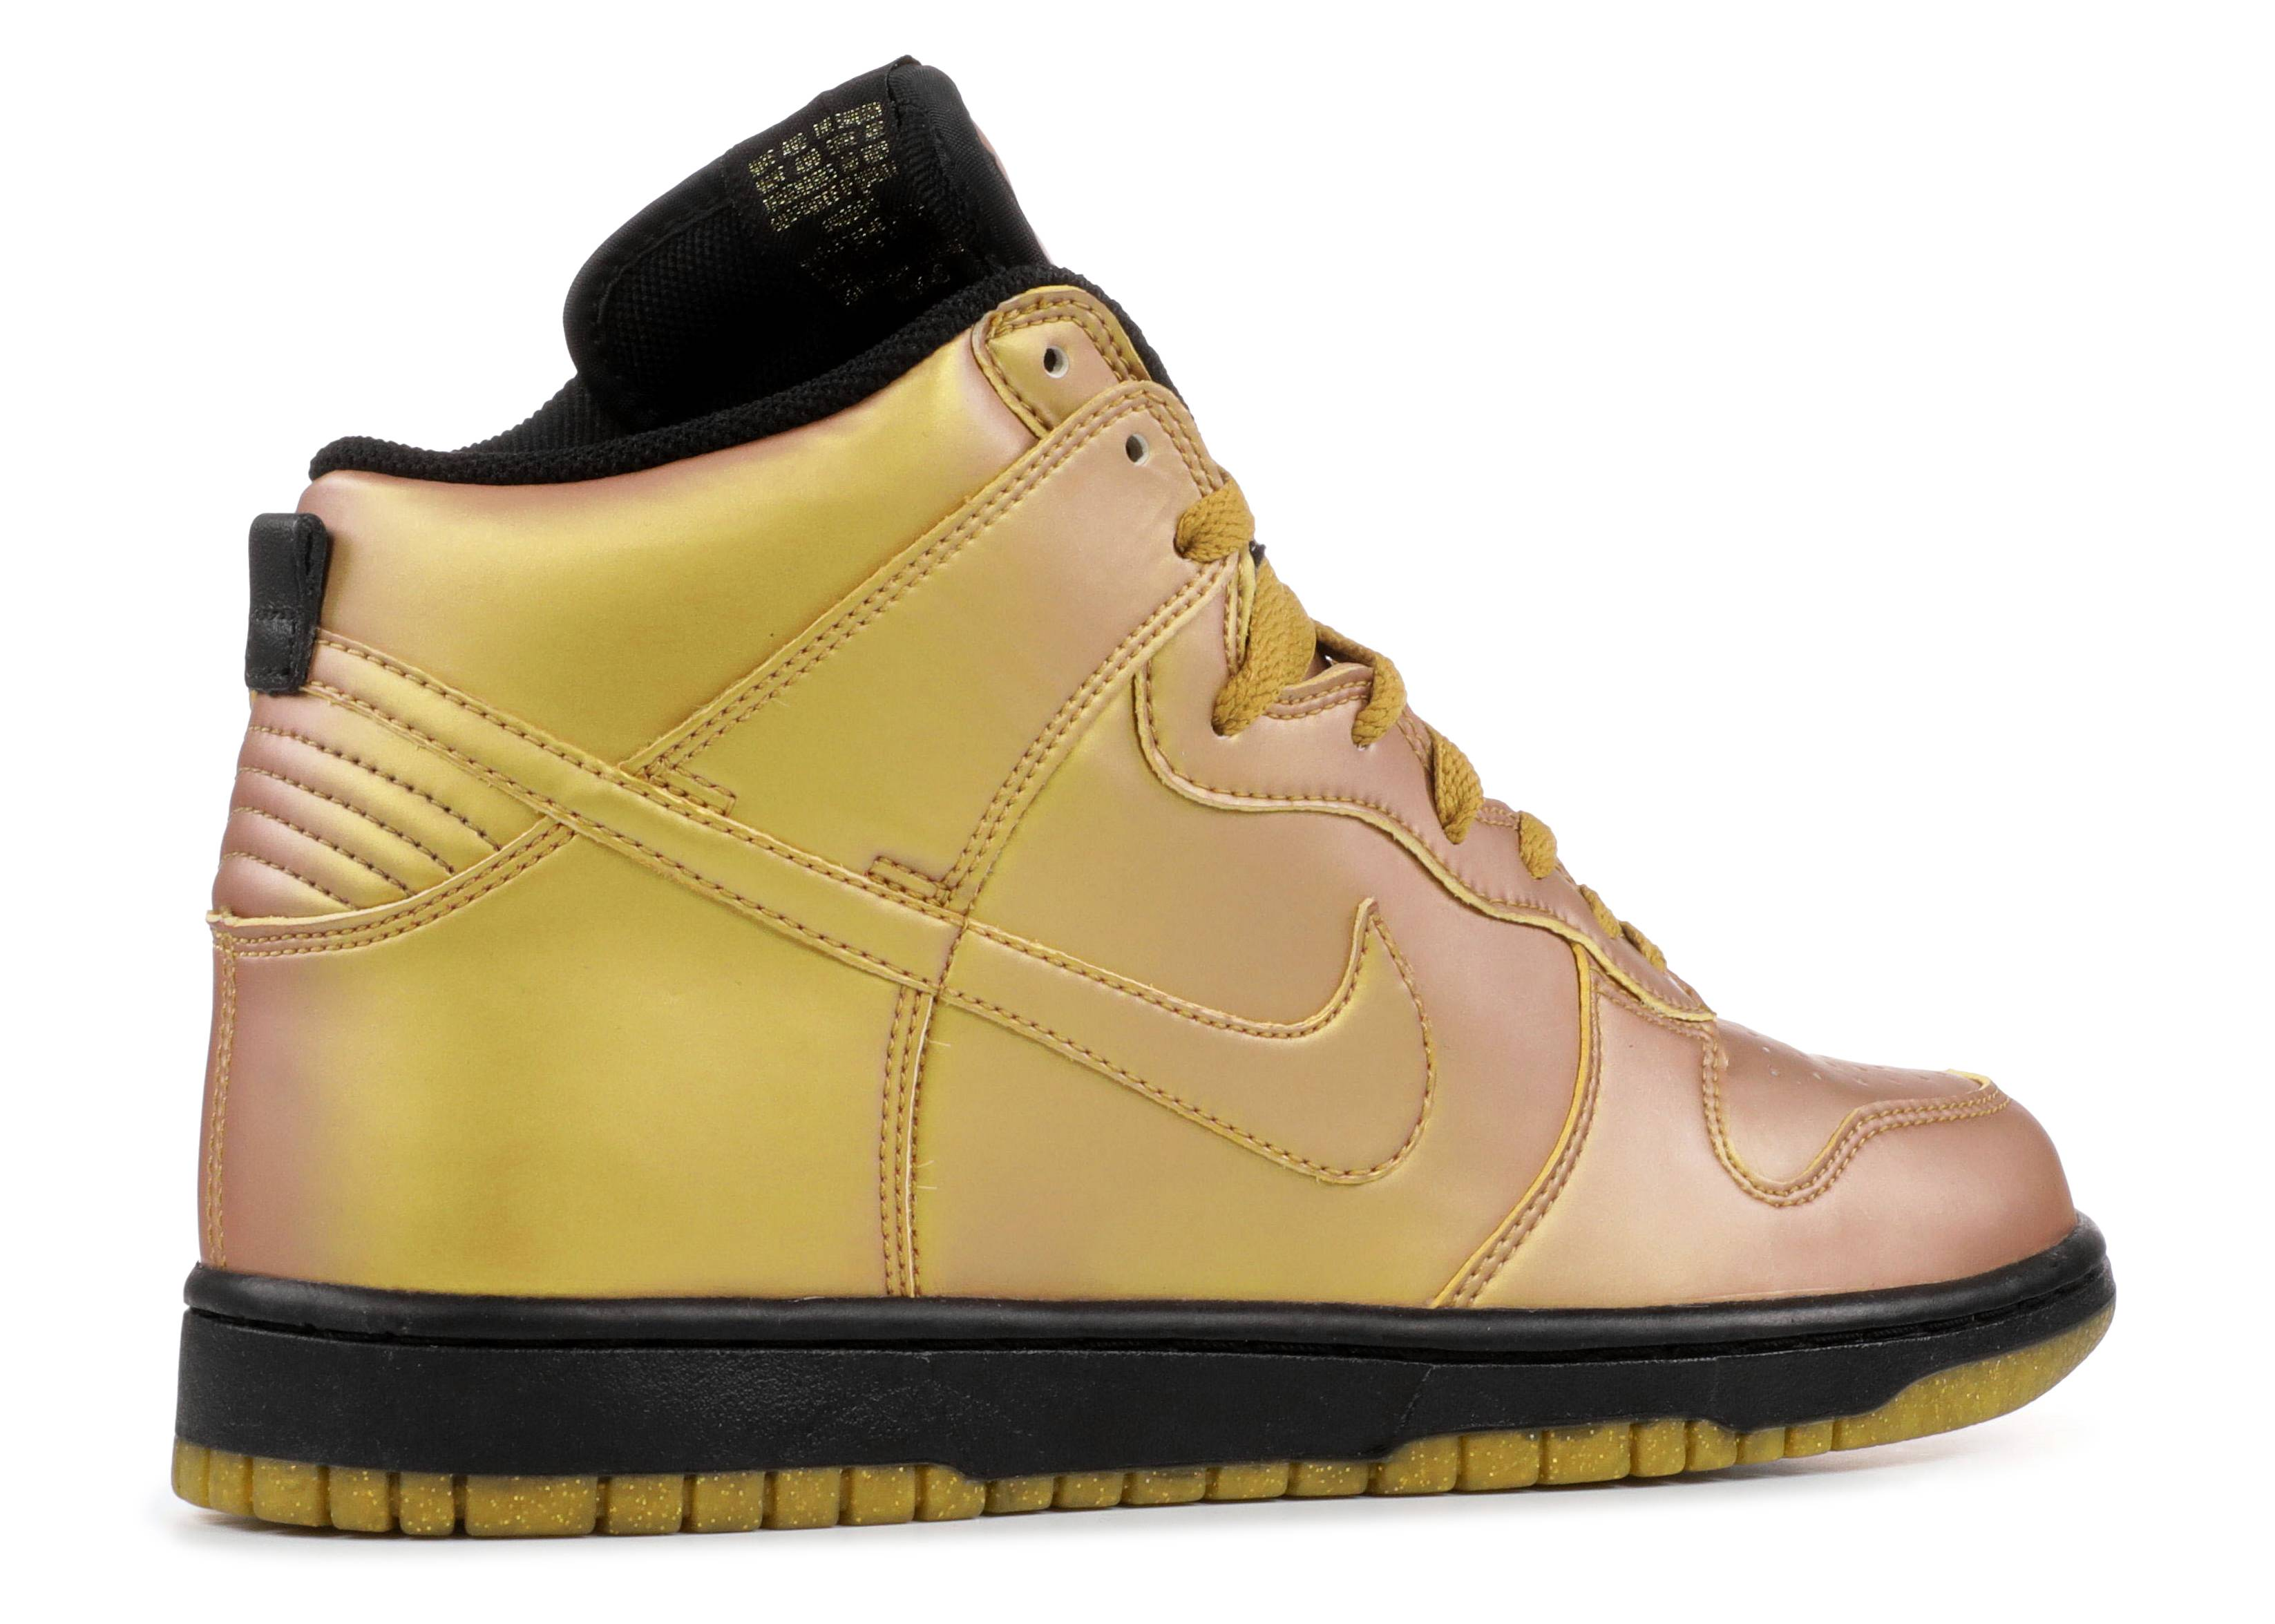 45636986198 nike dunk bison black and gold